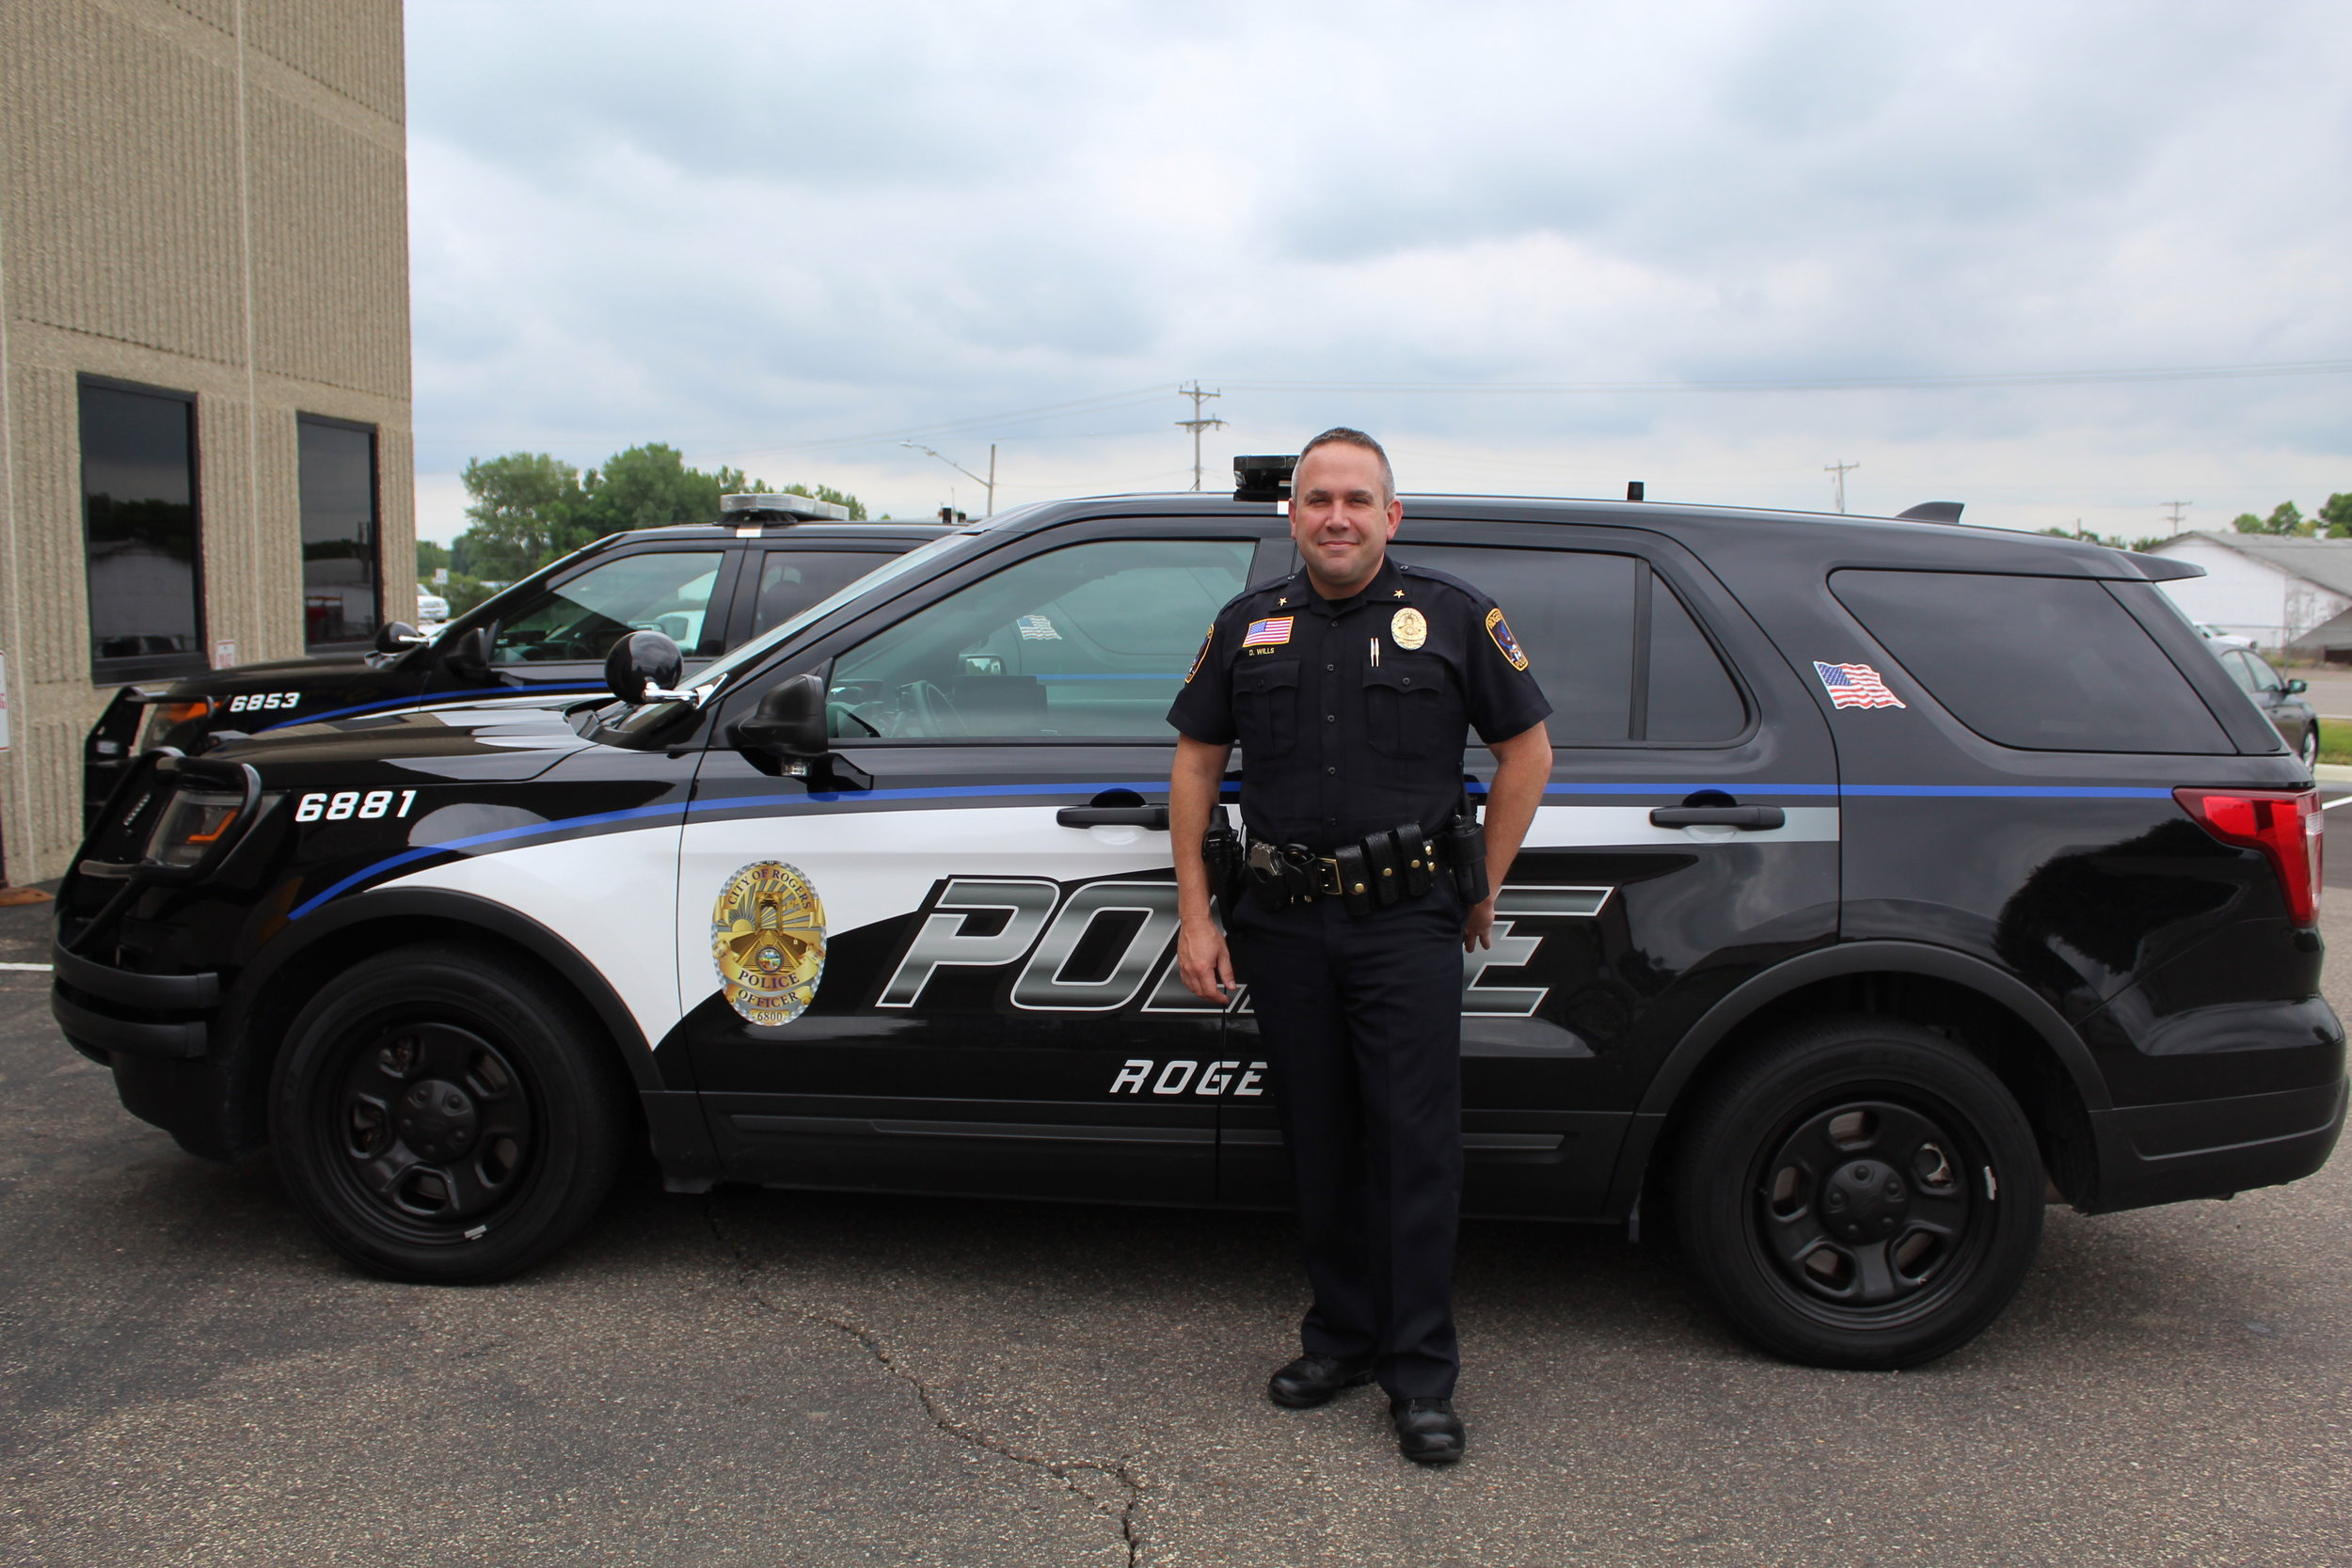 Picture of Chief Wills next to police car